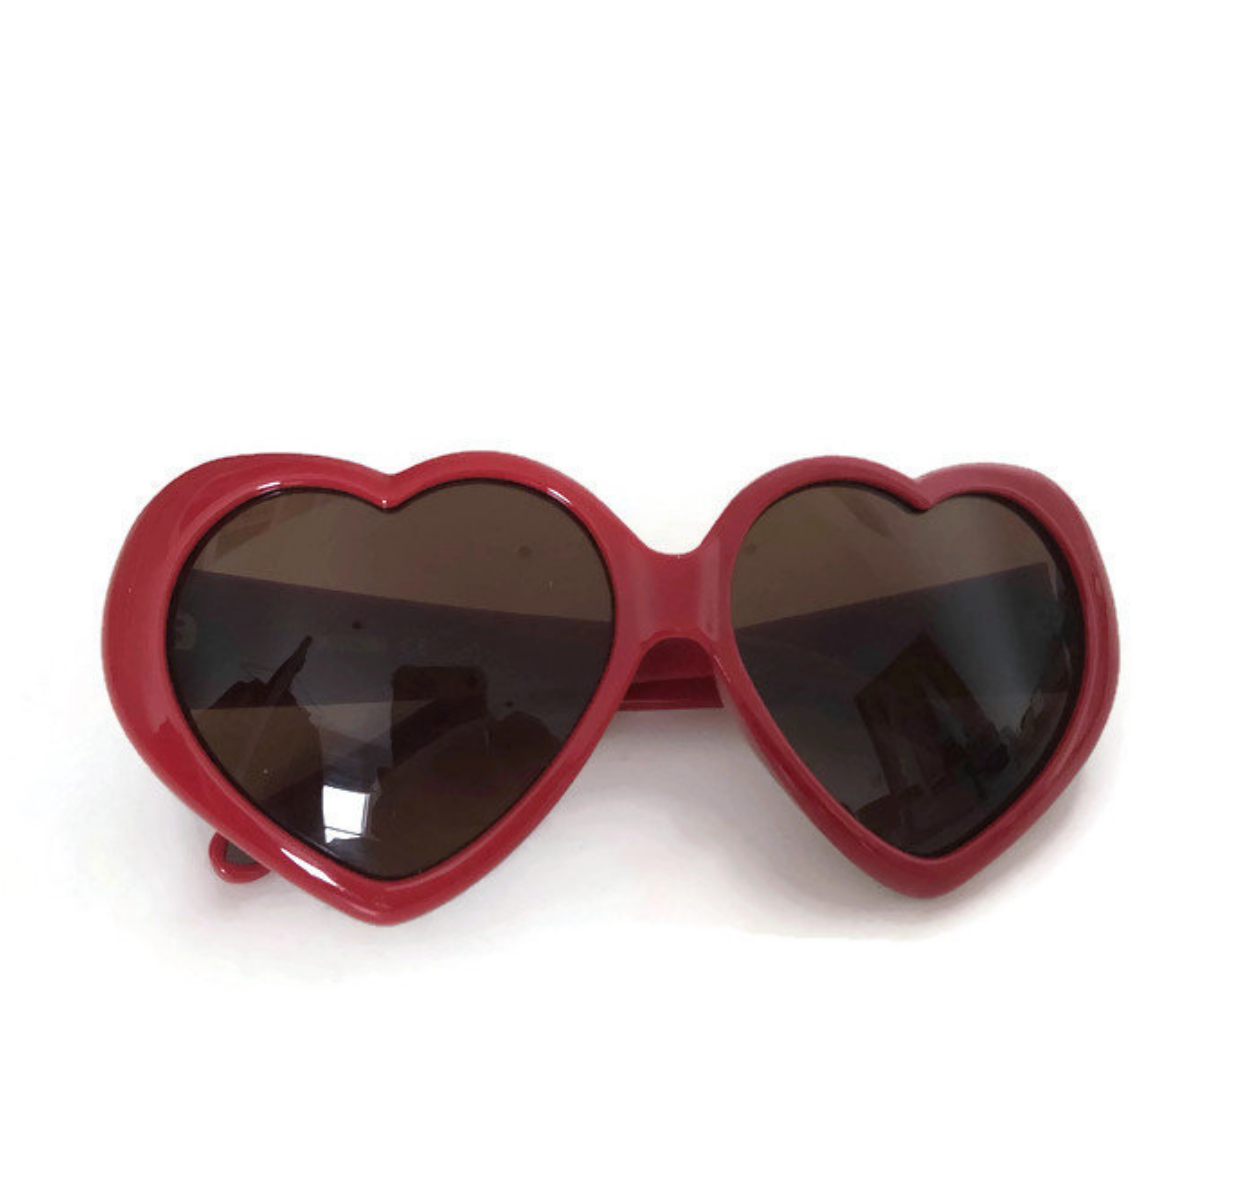 9333660fa233 Moschino Lolita Heart Sunglasses